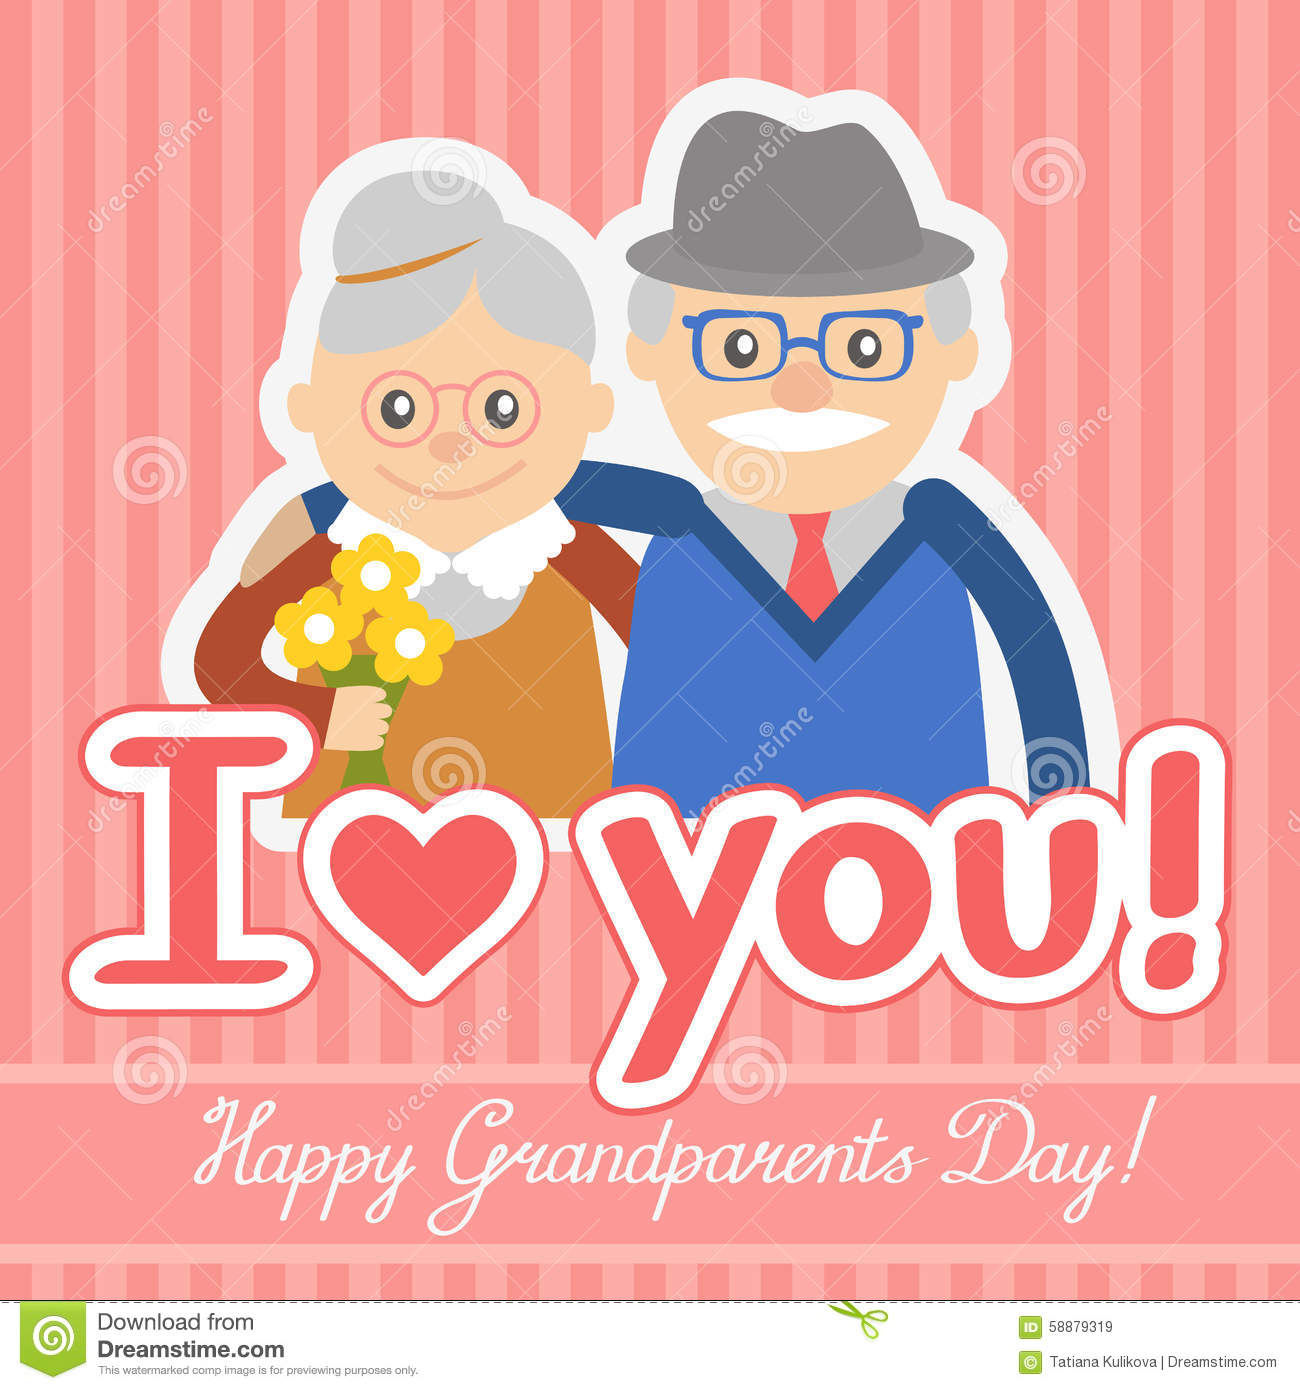 Fashion week Grandparents Happy day for girls